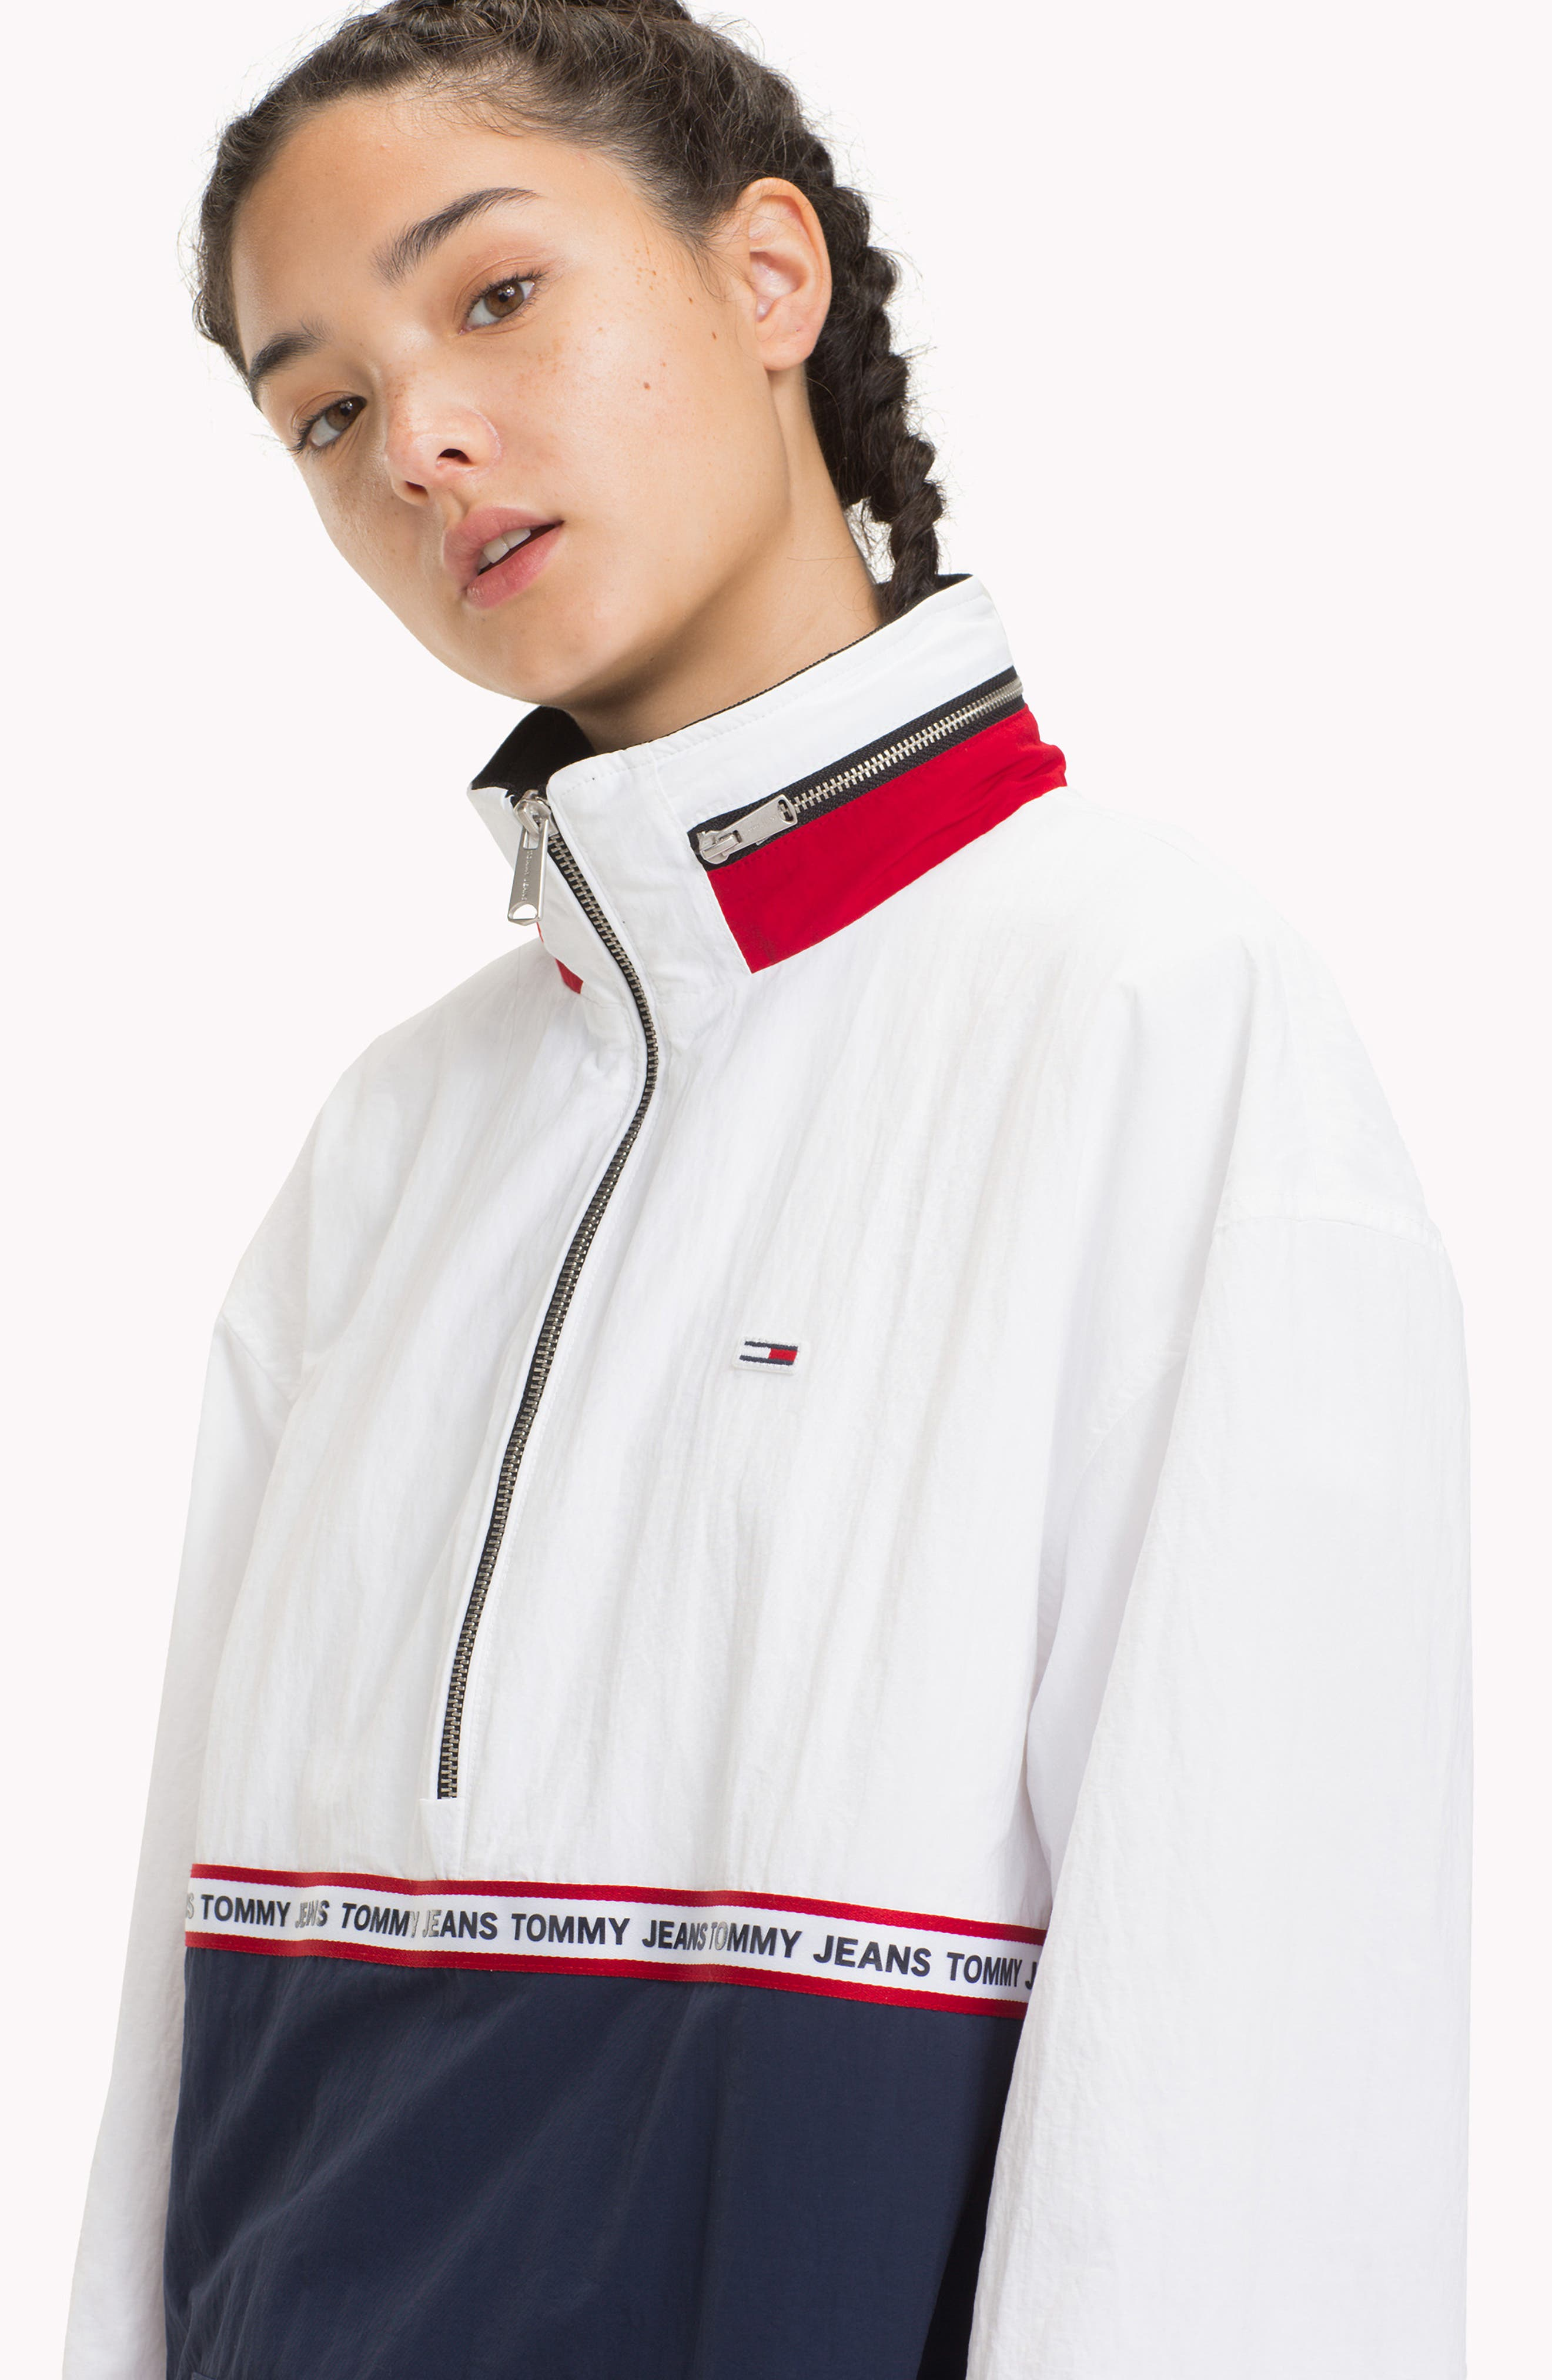 TOMMY JEANS,                             TJW Logo Tape Pullover,                             Alternate thumbnail 9, color,                             400